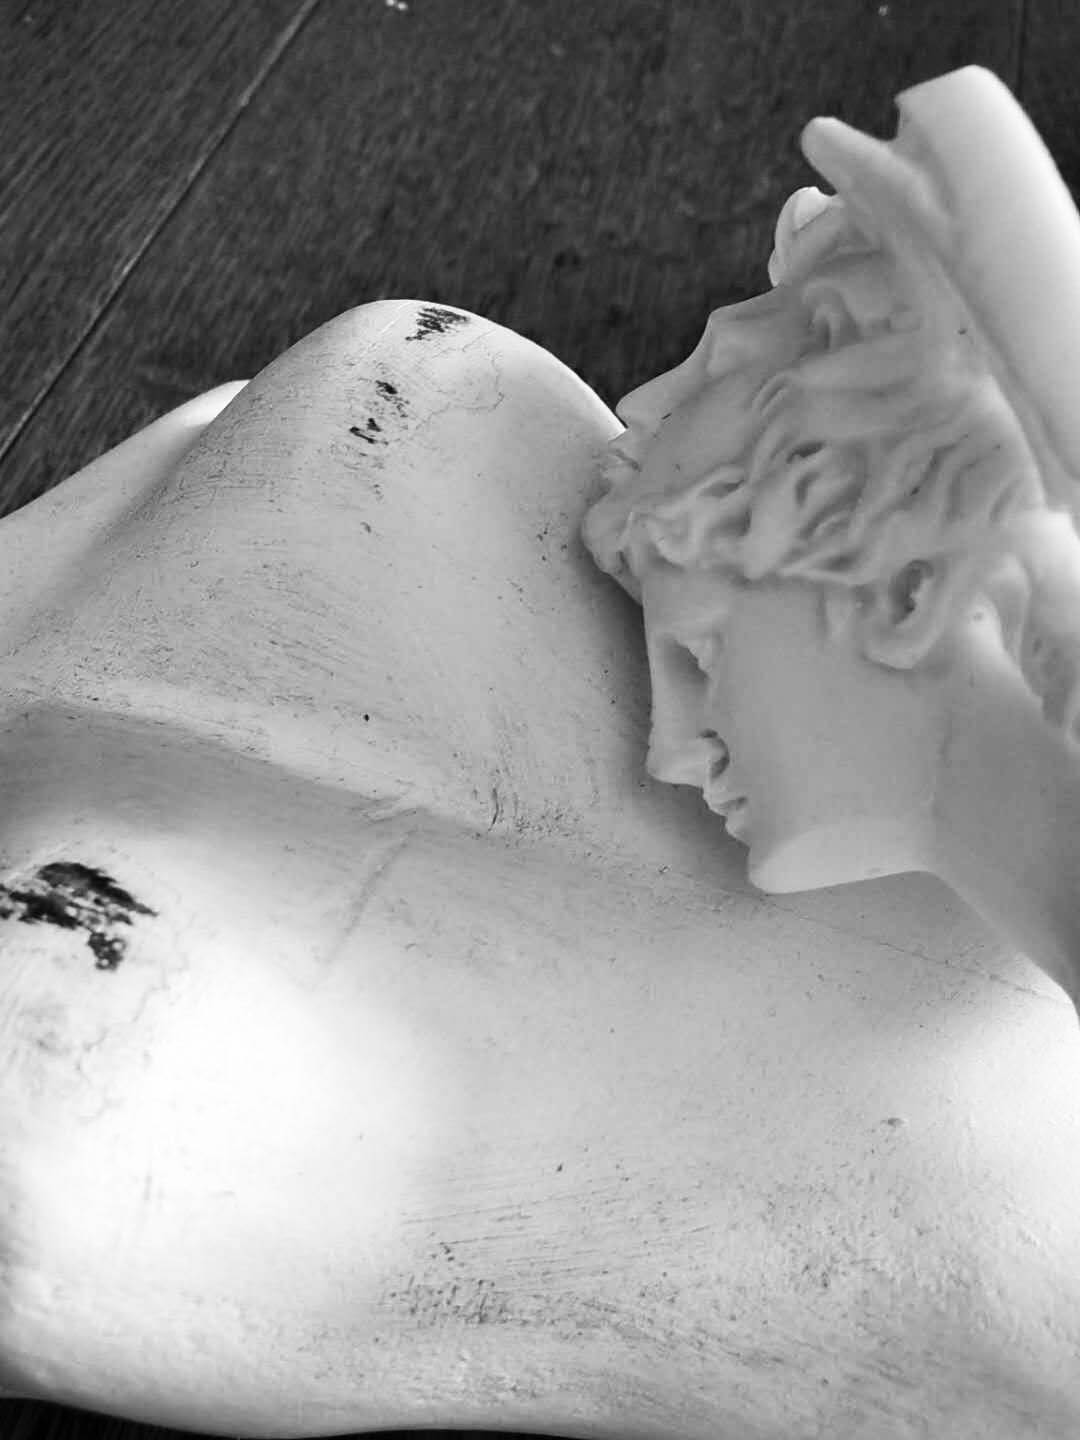 Black and white photo of classical sculpture head resting on torso of female sculpture.